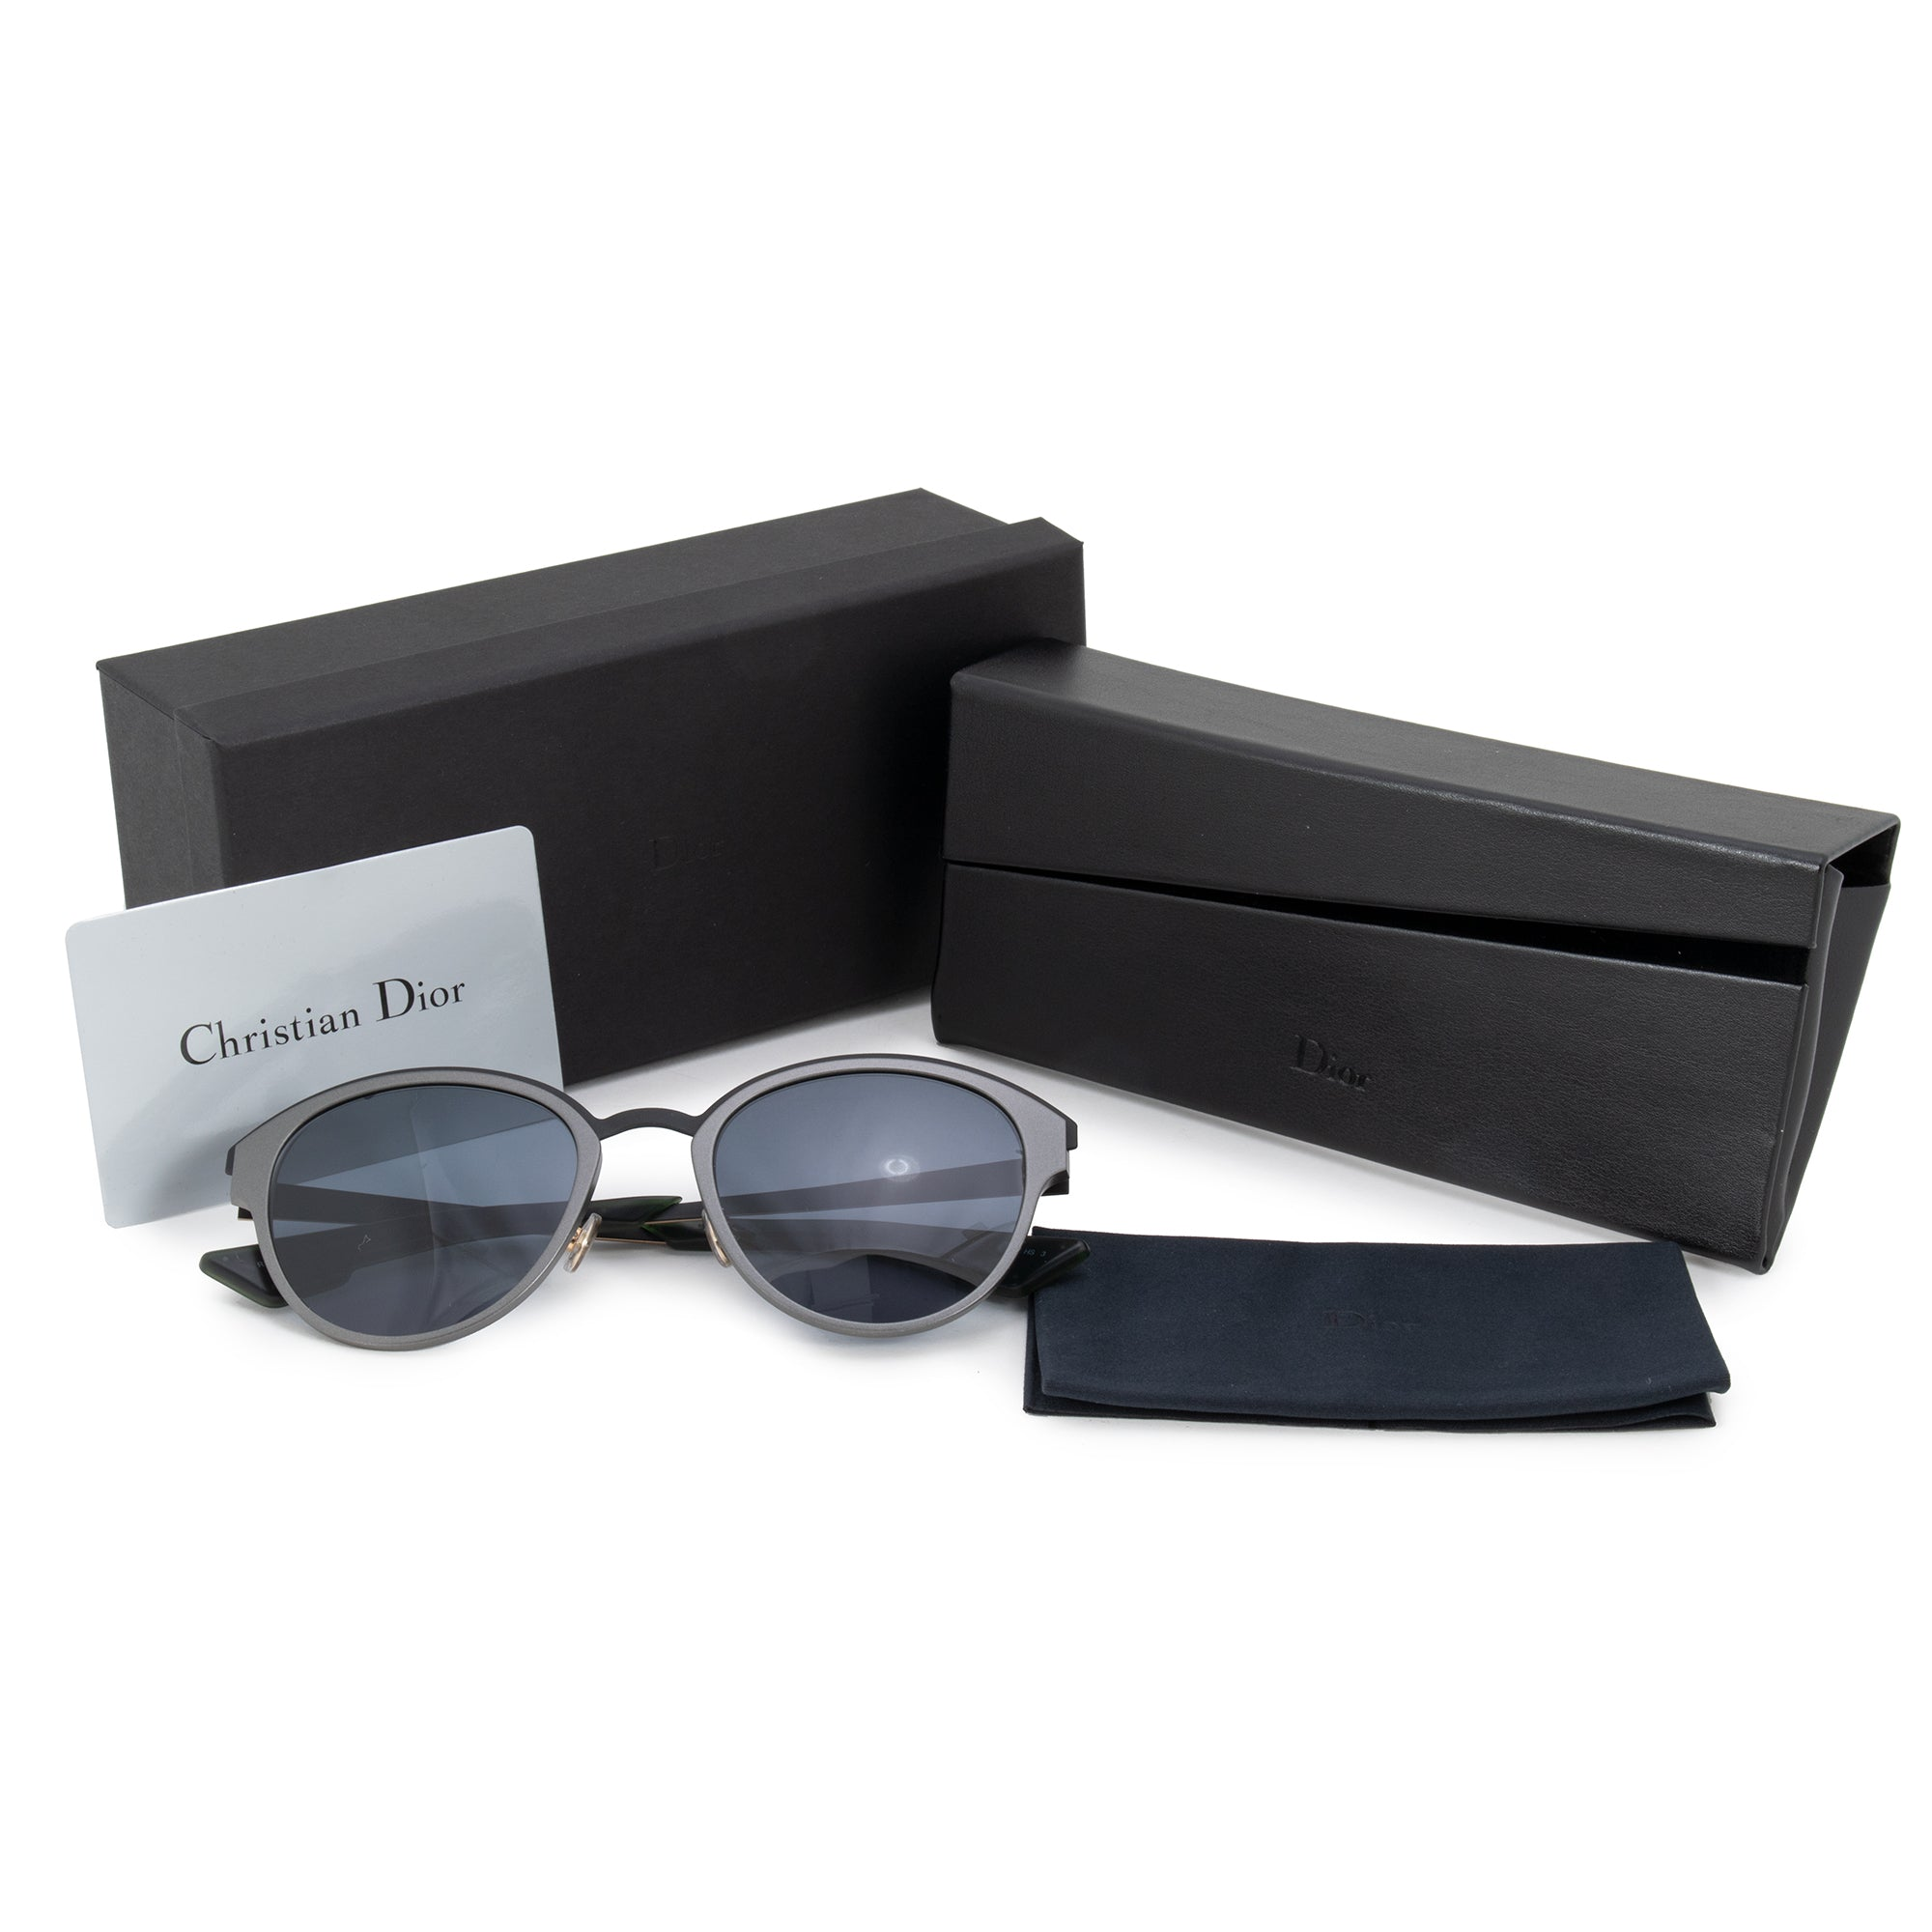 Christian Dior Sun Oval Sunglasses RCO9A 52